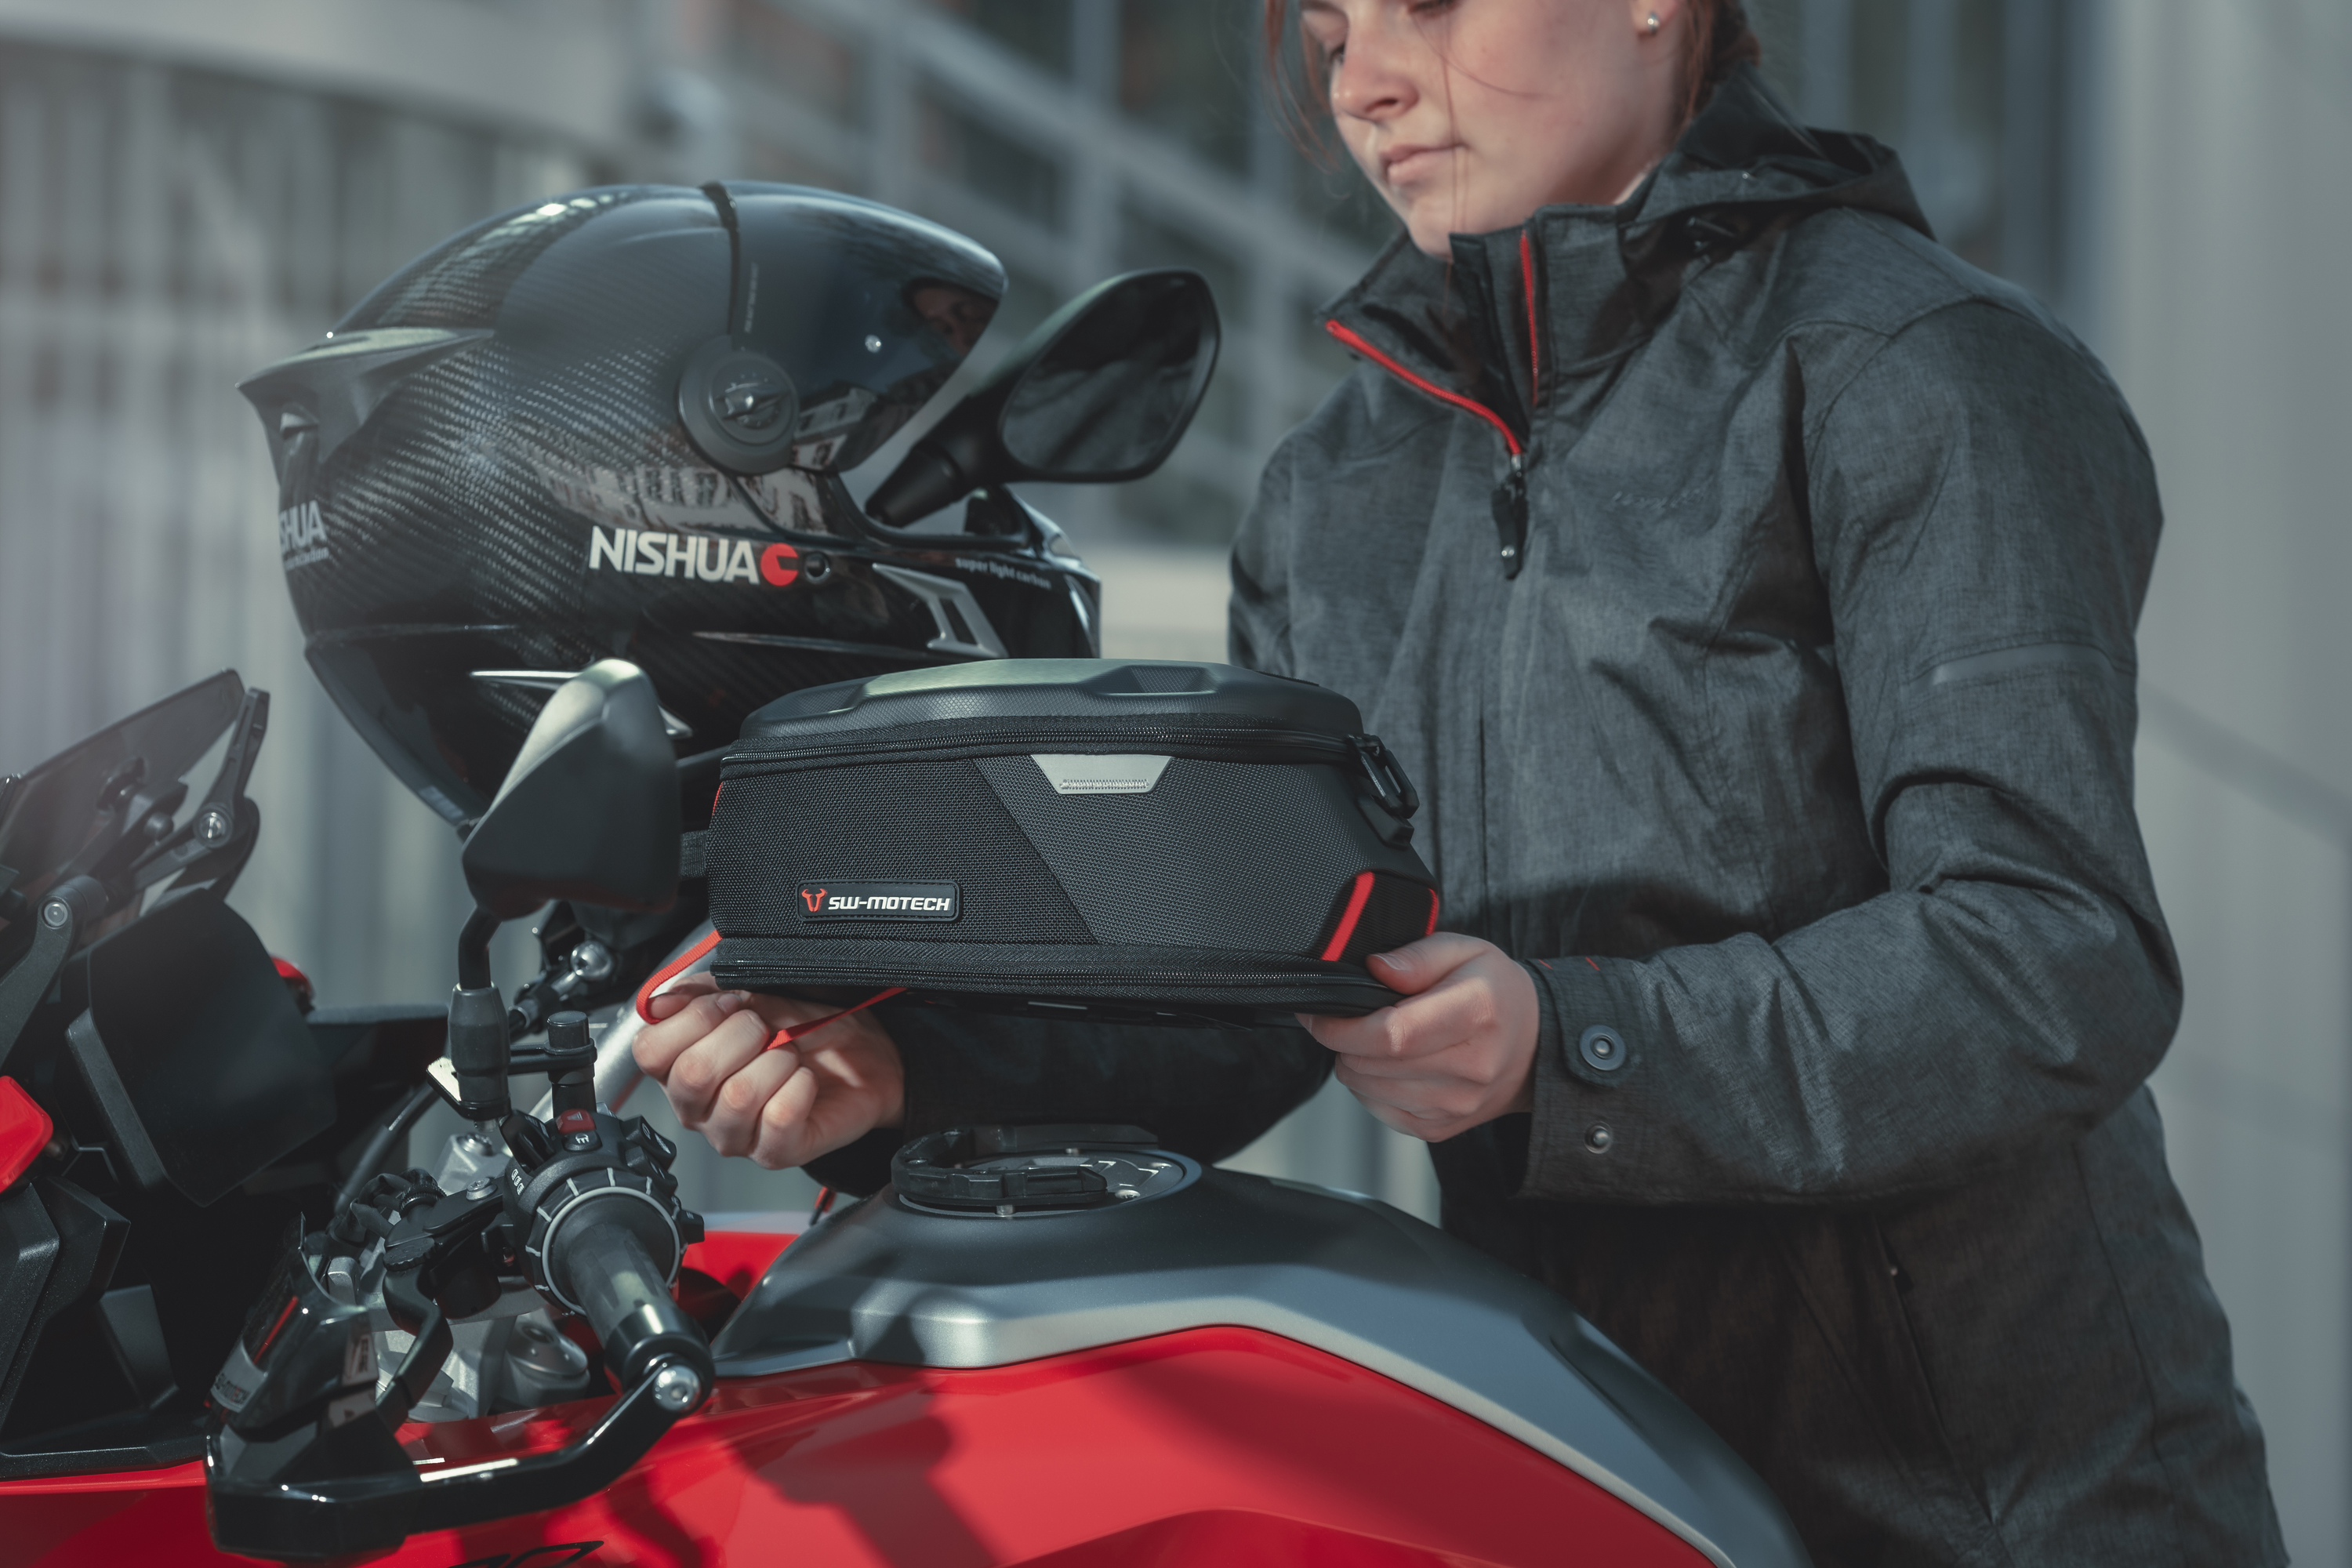 The motorcycle magnetic tank bag reinvented